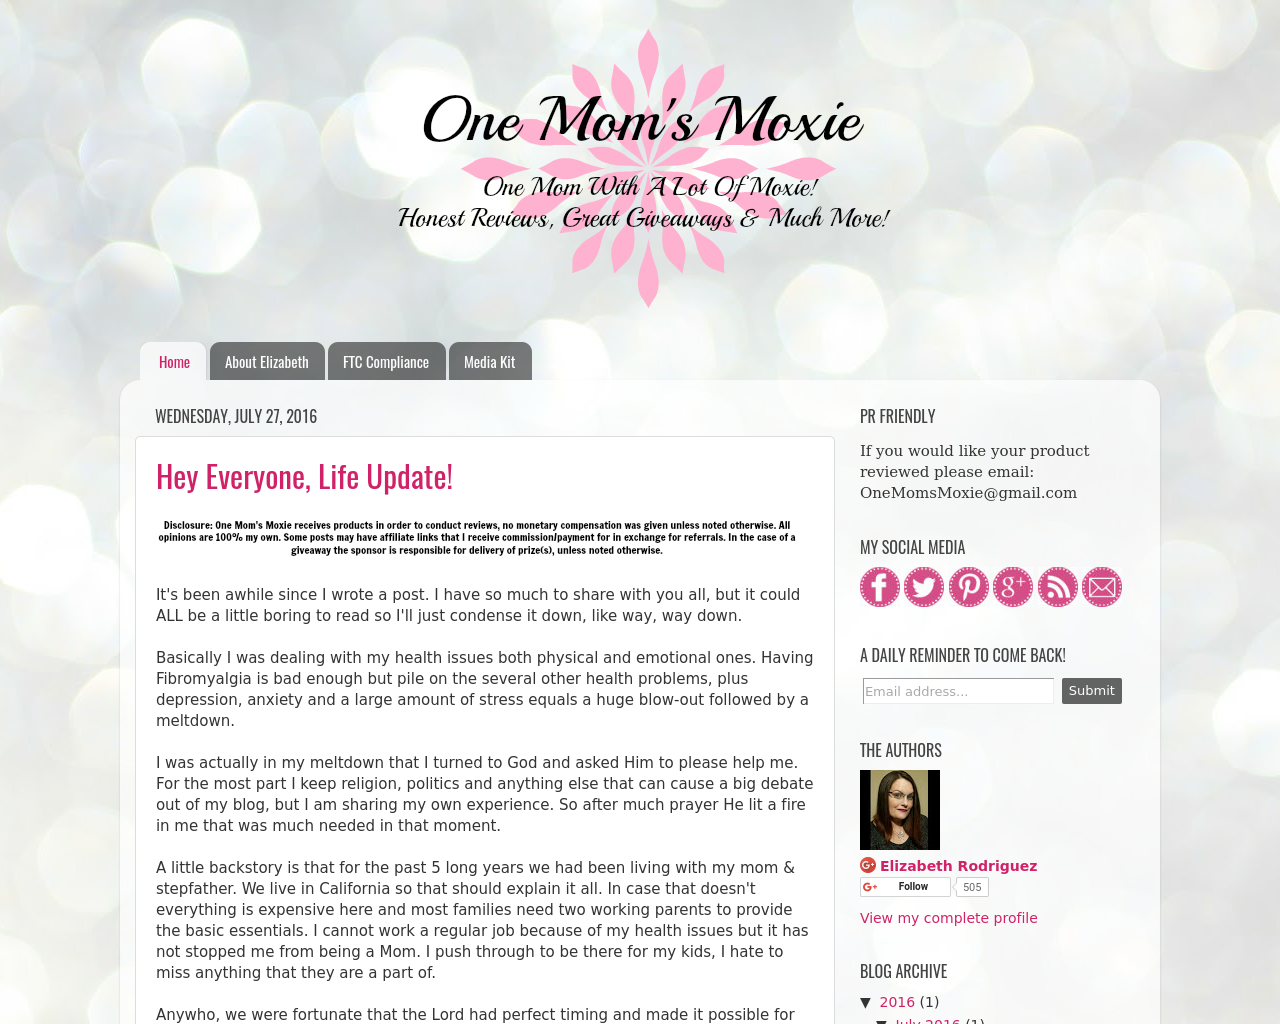 One-Mom's-Moxie-Advertising-Reviews-Pricing